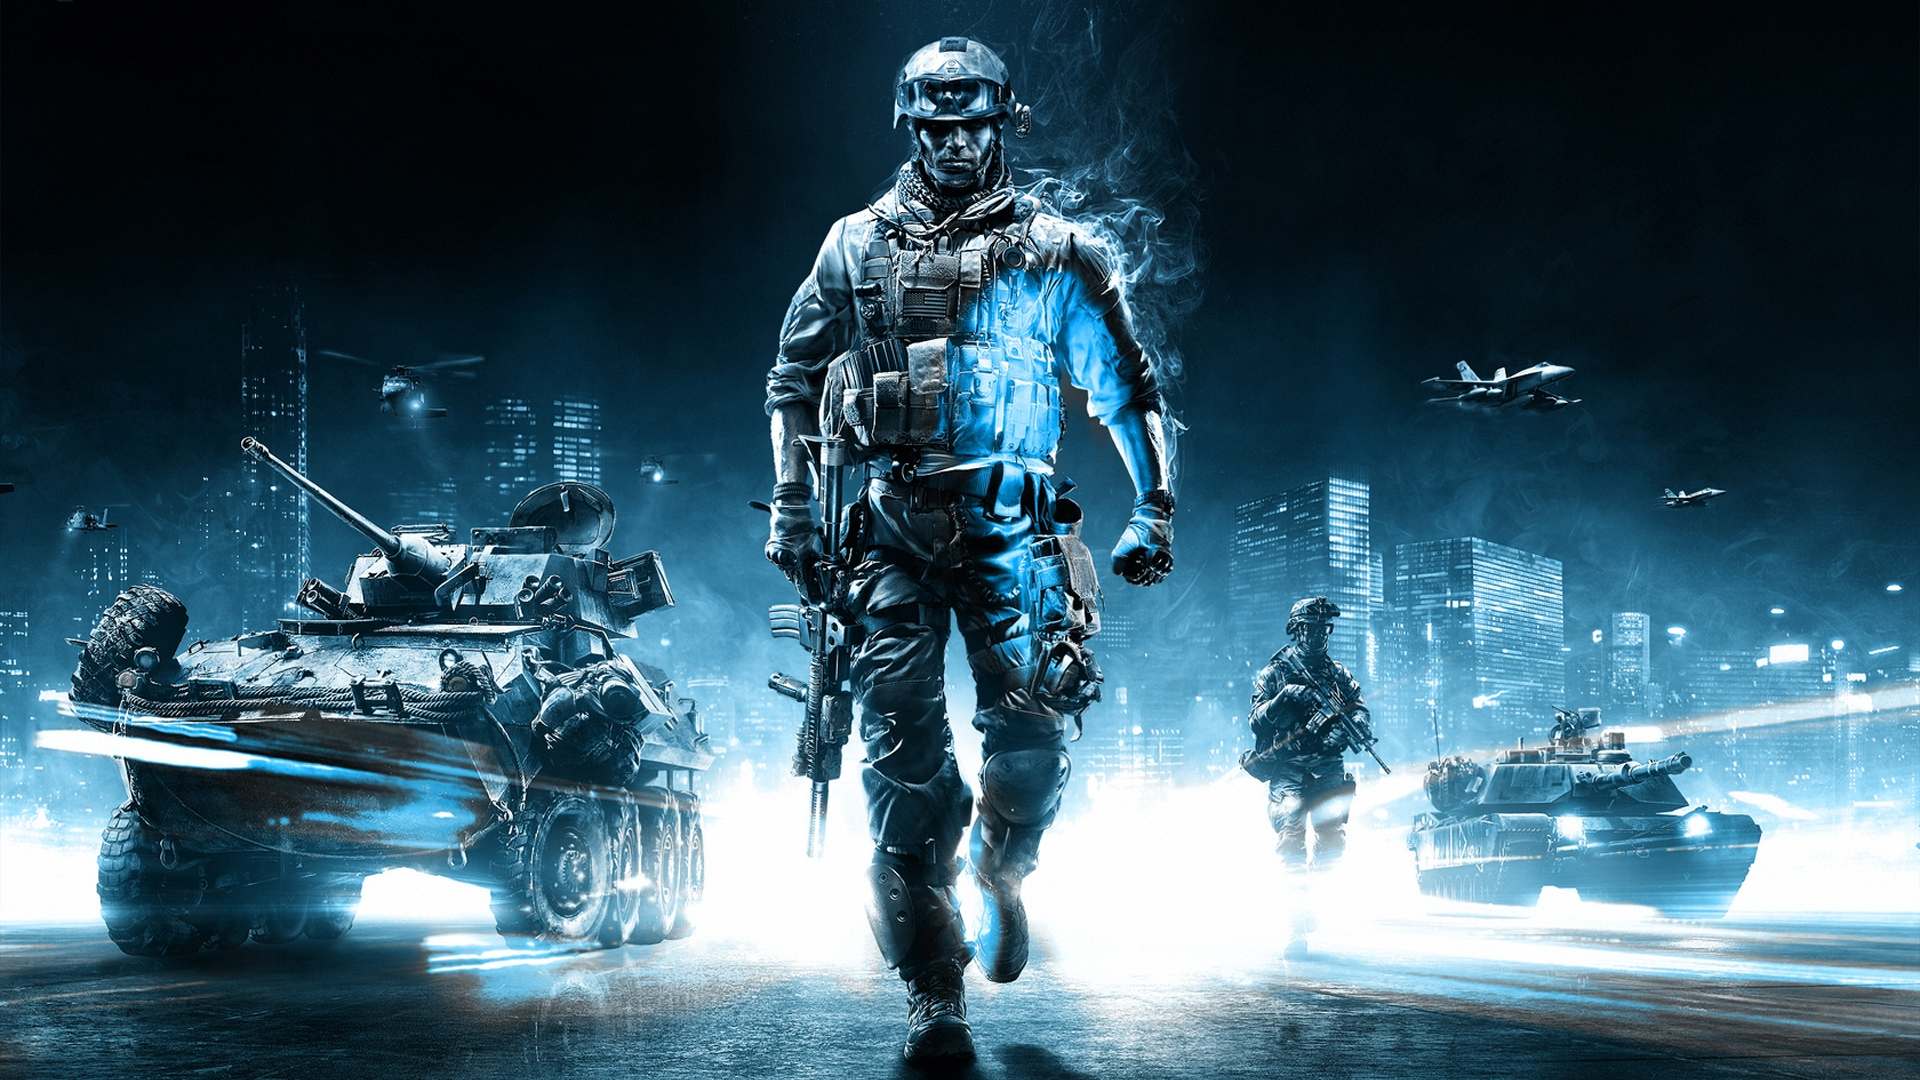 10 Best Cool Backgrounds For Gaming Full Hd 1920 1080 For: Best Wallpapers